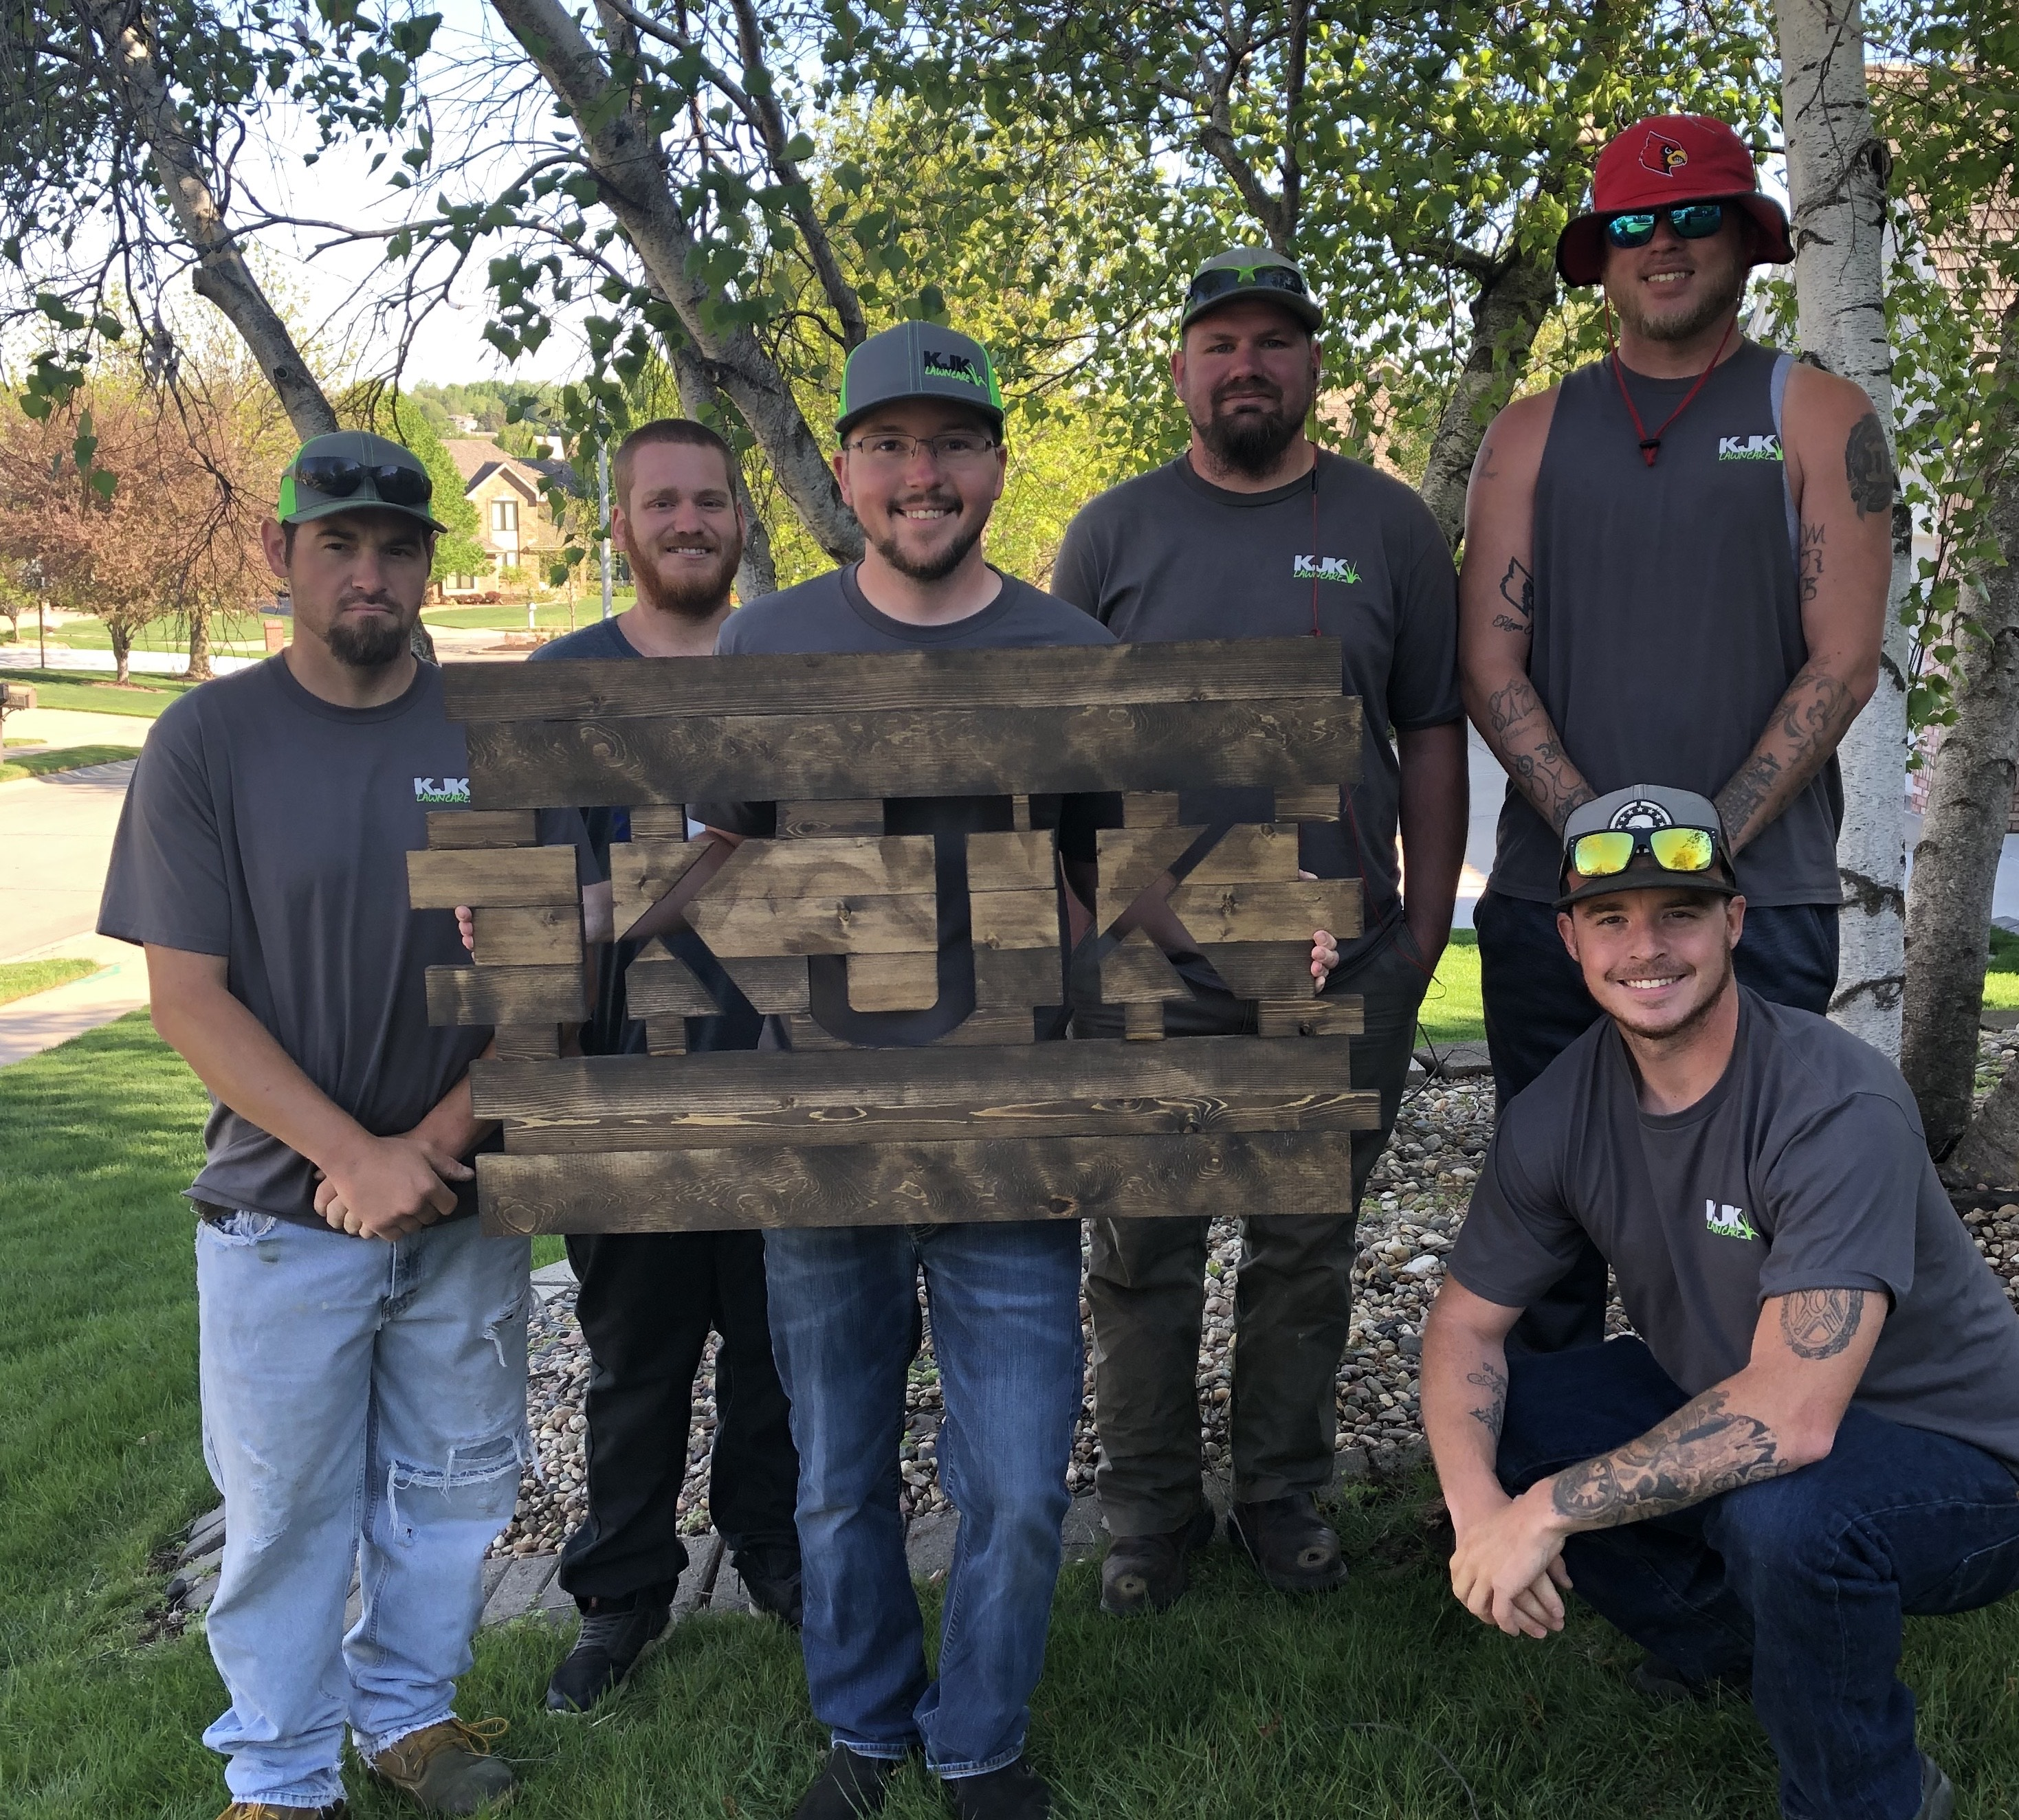 The team at KJK Lawncare pose for a portrait. The company is this month's Greater Omaha Chamber Small Business of the Month. (Courtesy KJK Lawncare)